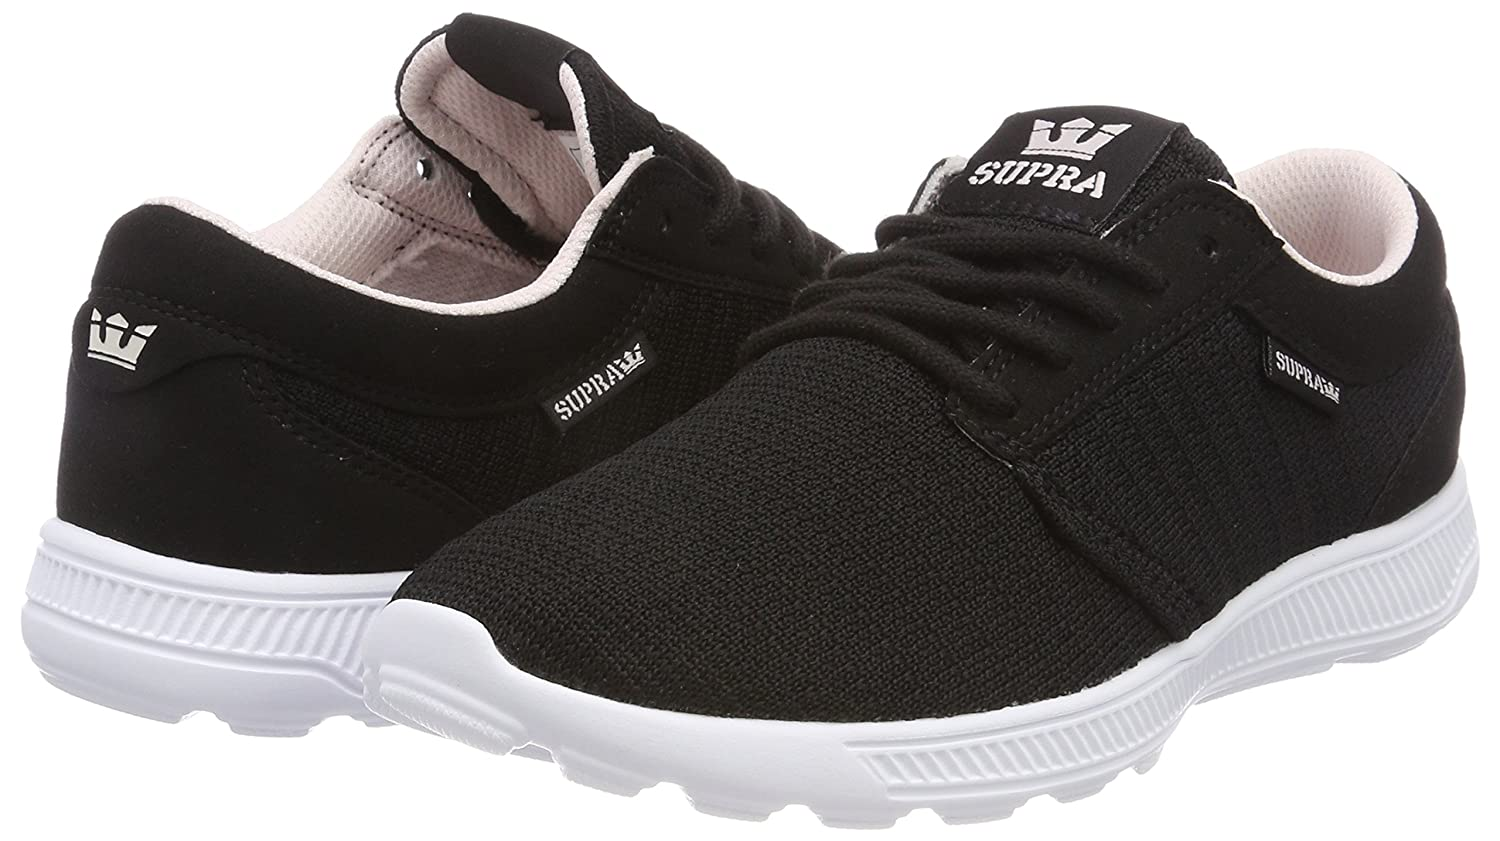 Supra Men's Hammer Run Skate Shoe B074KK9ZXK 8.5 M US|Black/Pink-white